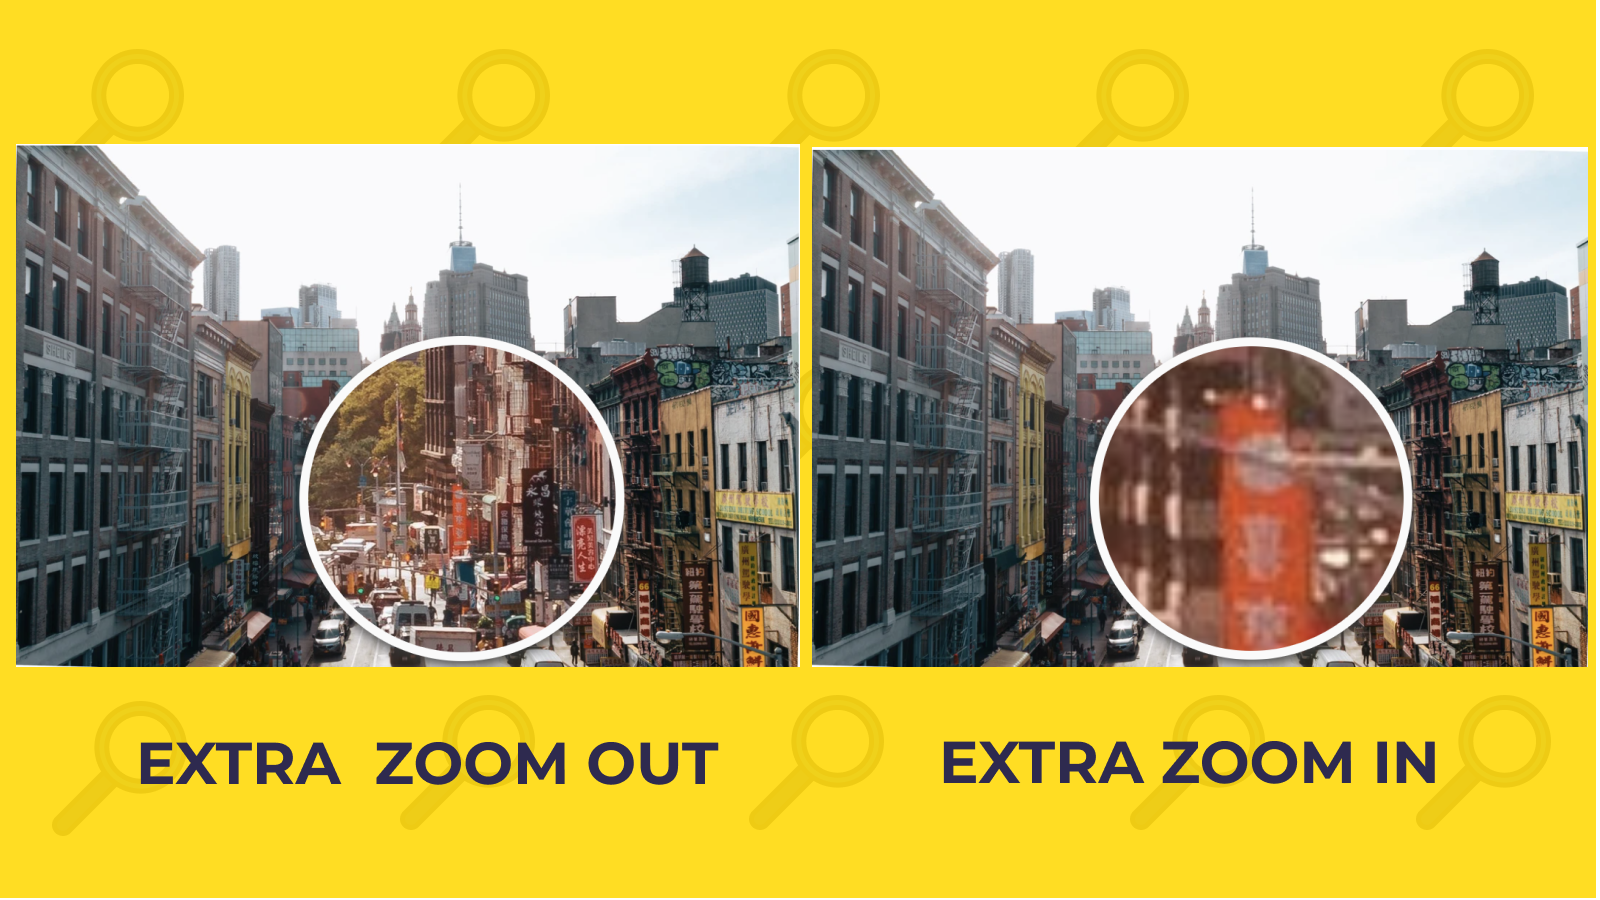 Extra zoom-out vs Extra zoom-in